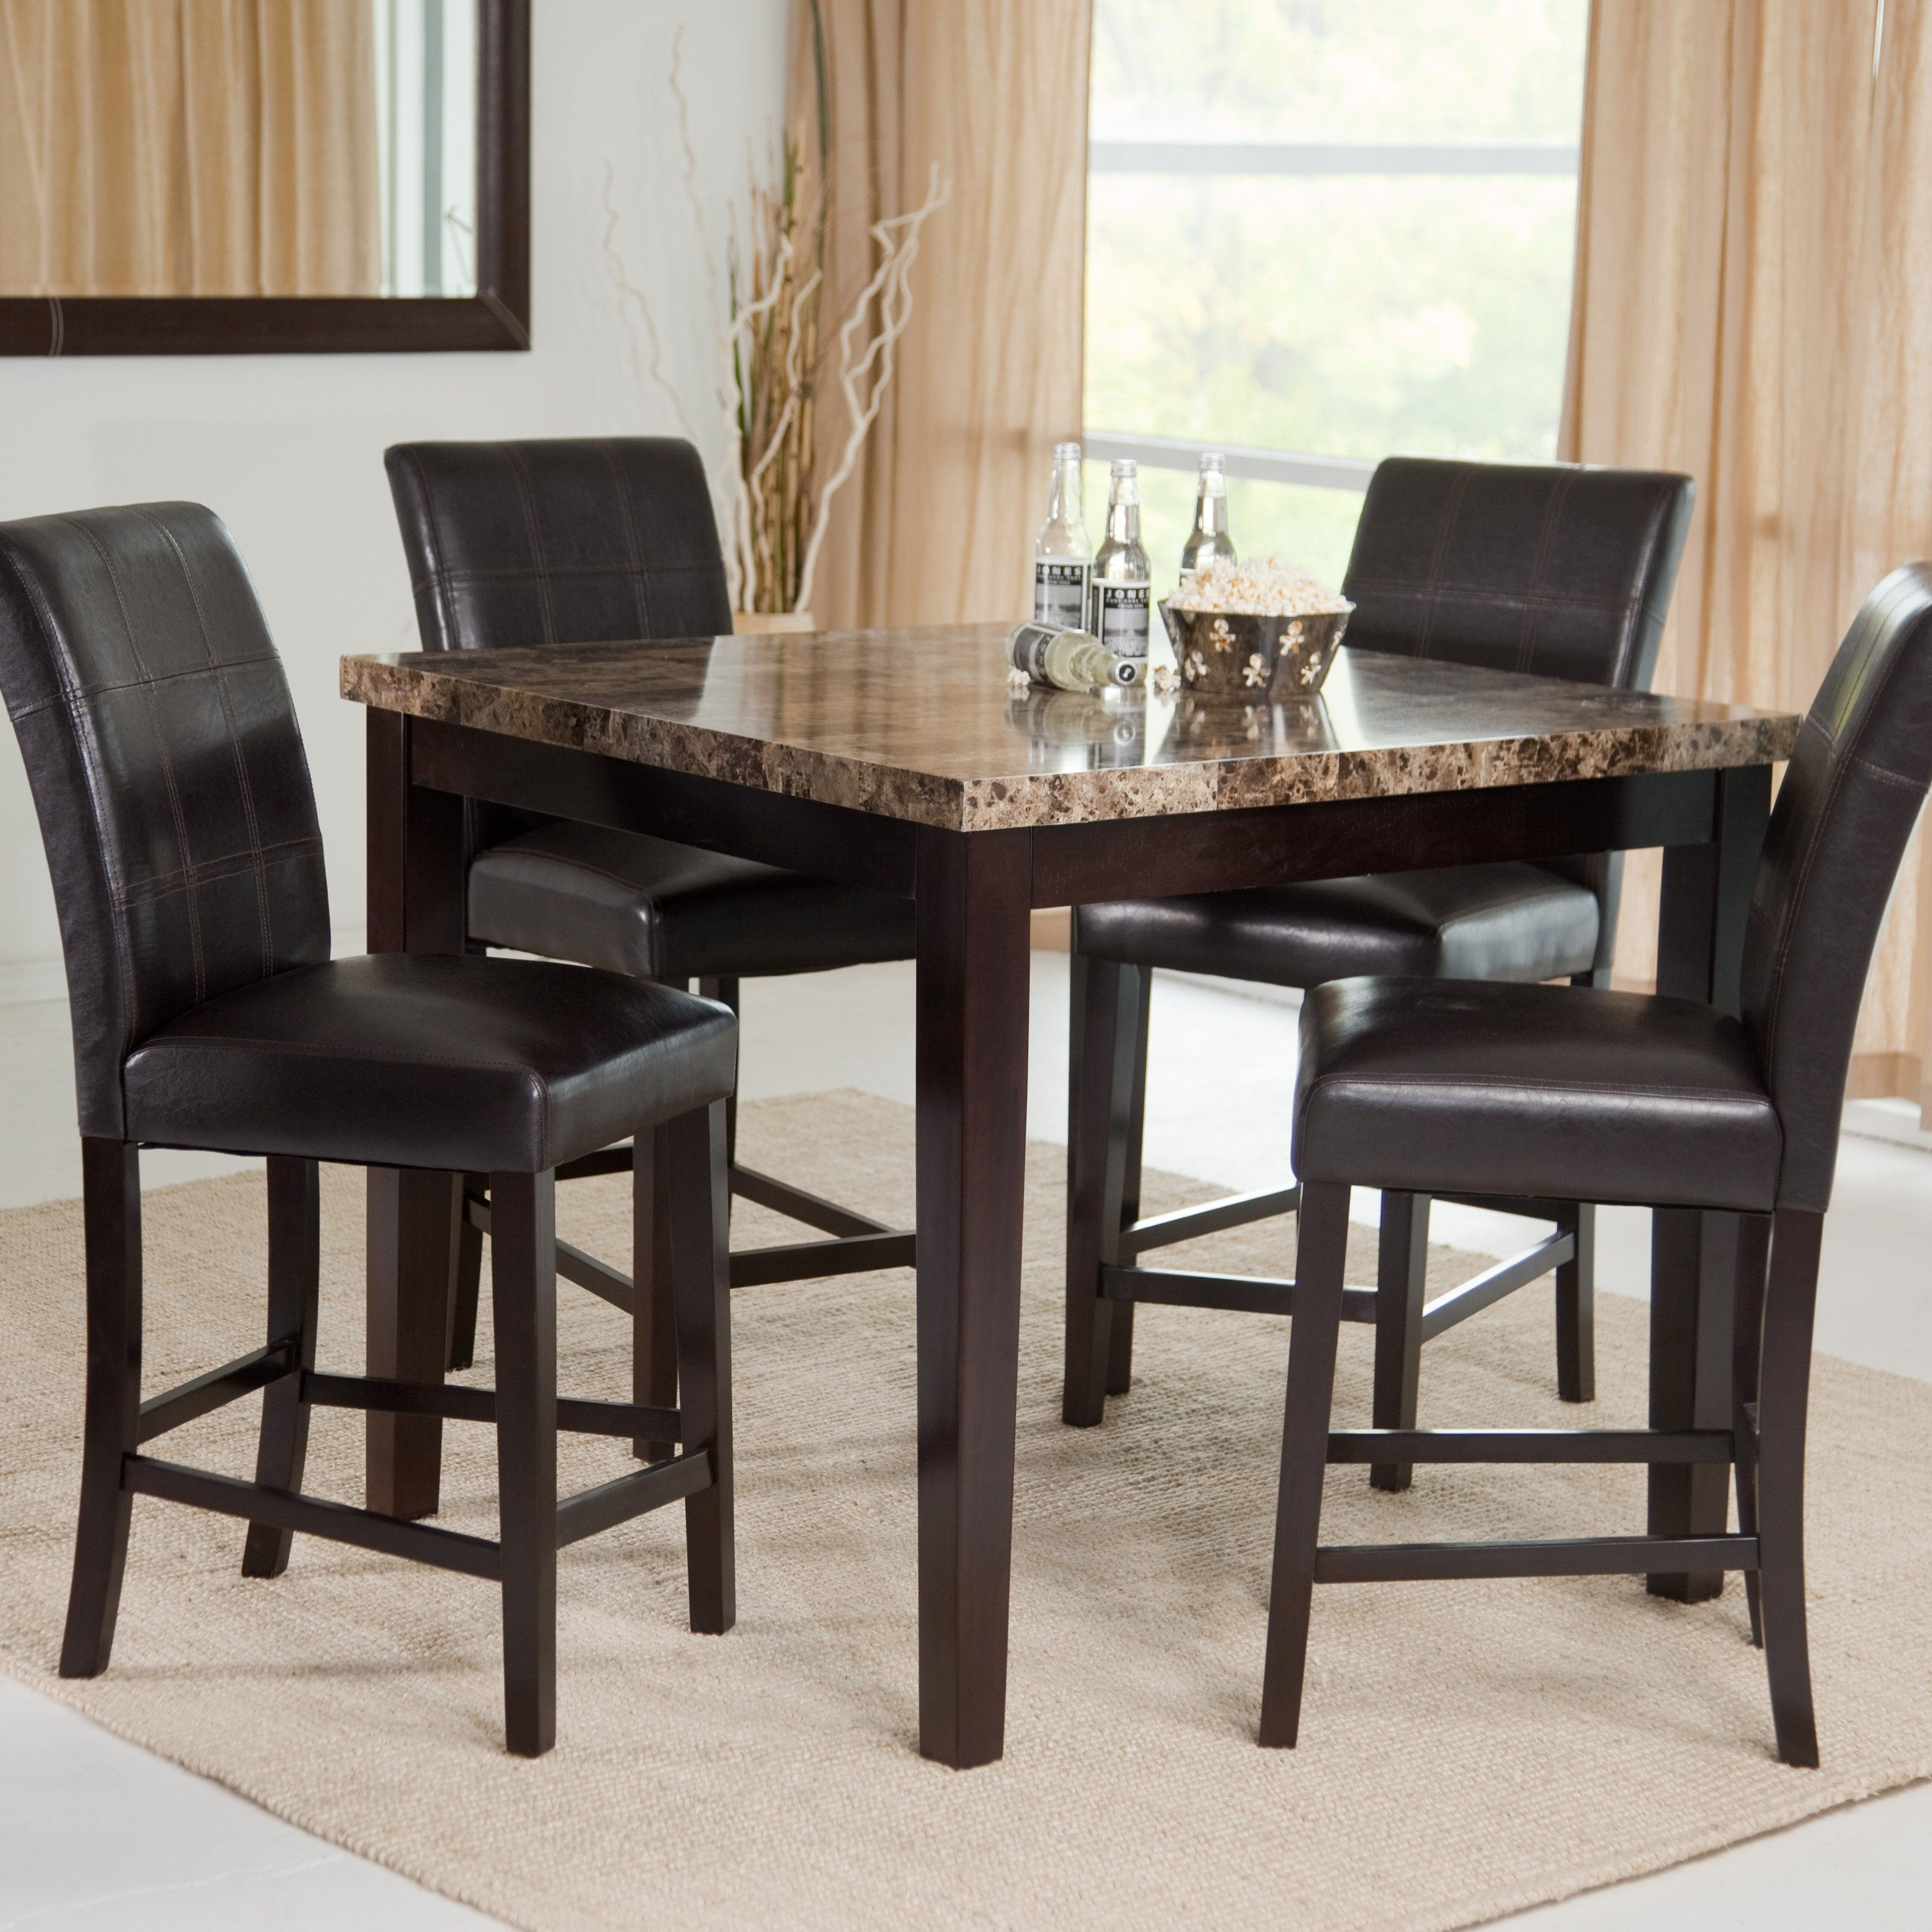 Have To Have It. Palazzo 5 Piece Counter Height Dining Set – $ (View 13 of 20)